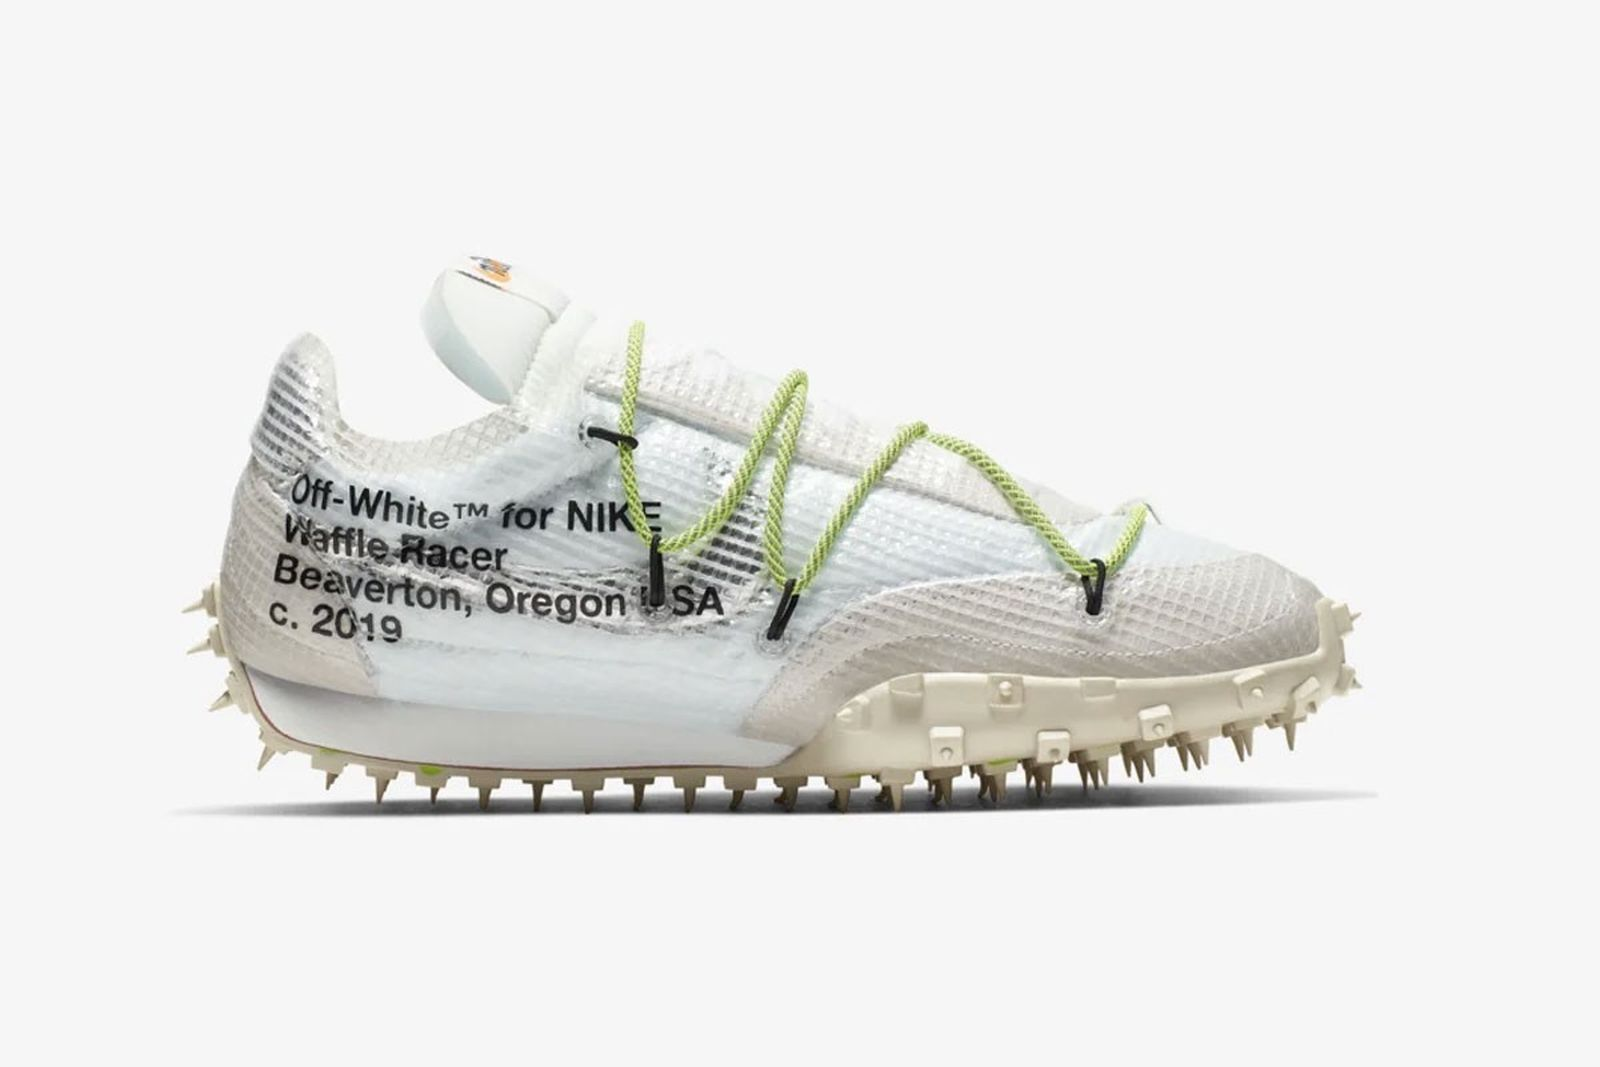 nike-off-white-guide-update-2020-waffle-racer3